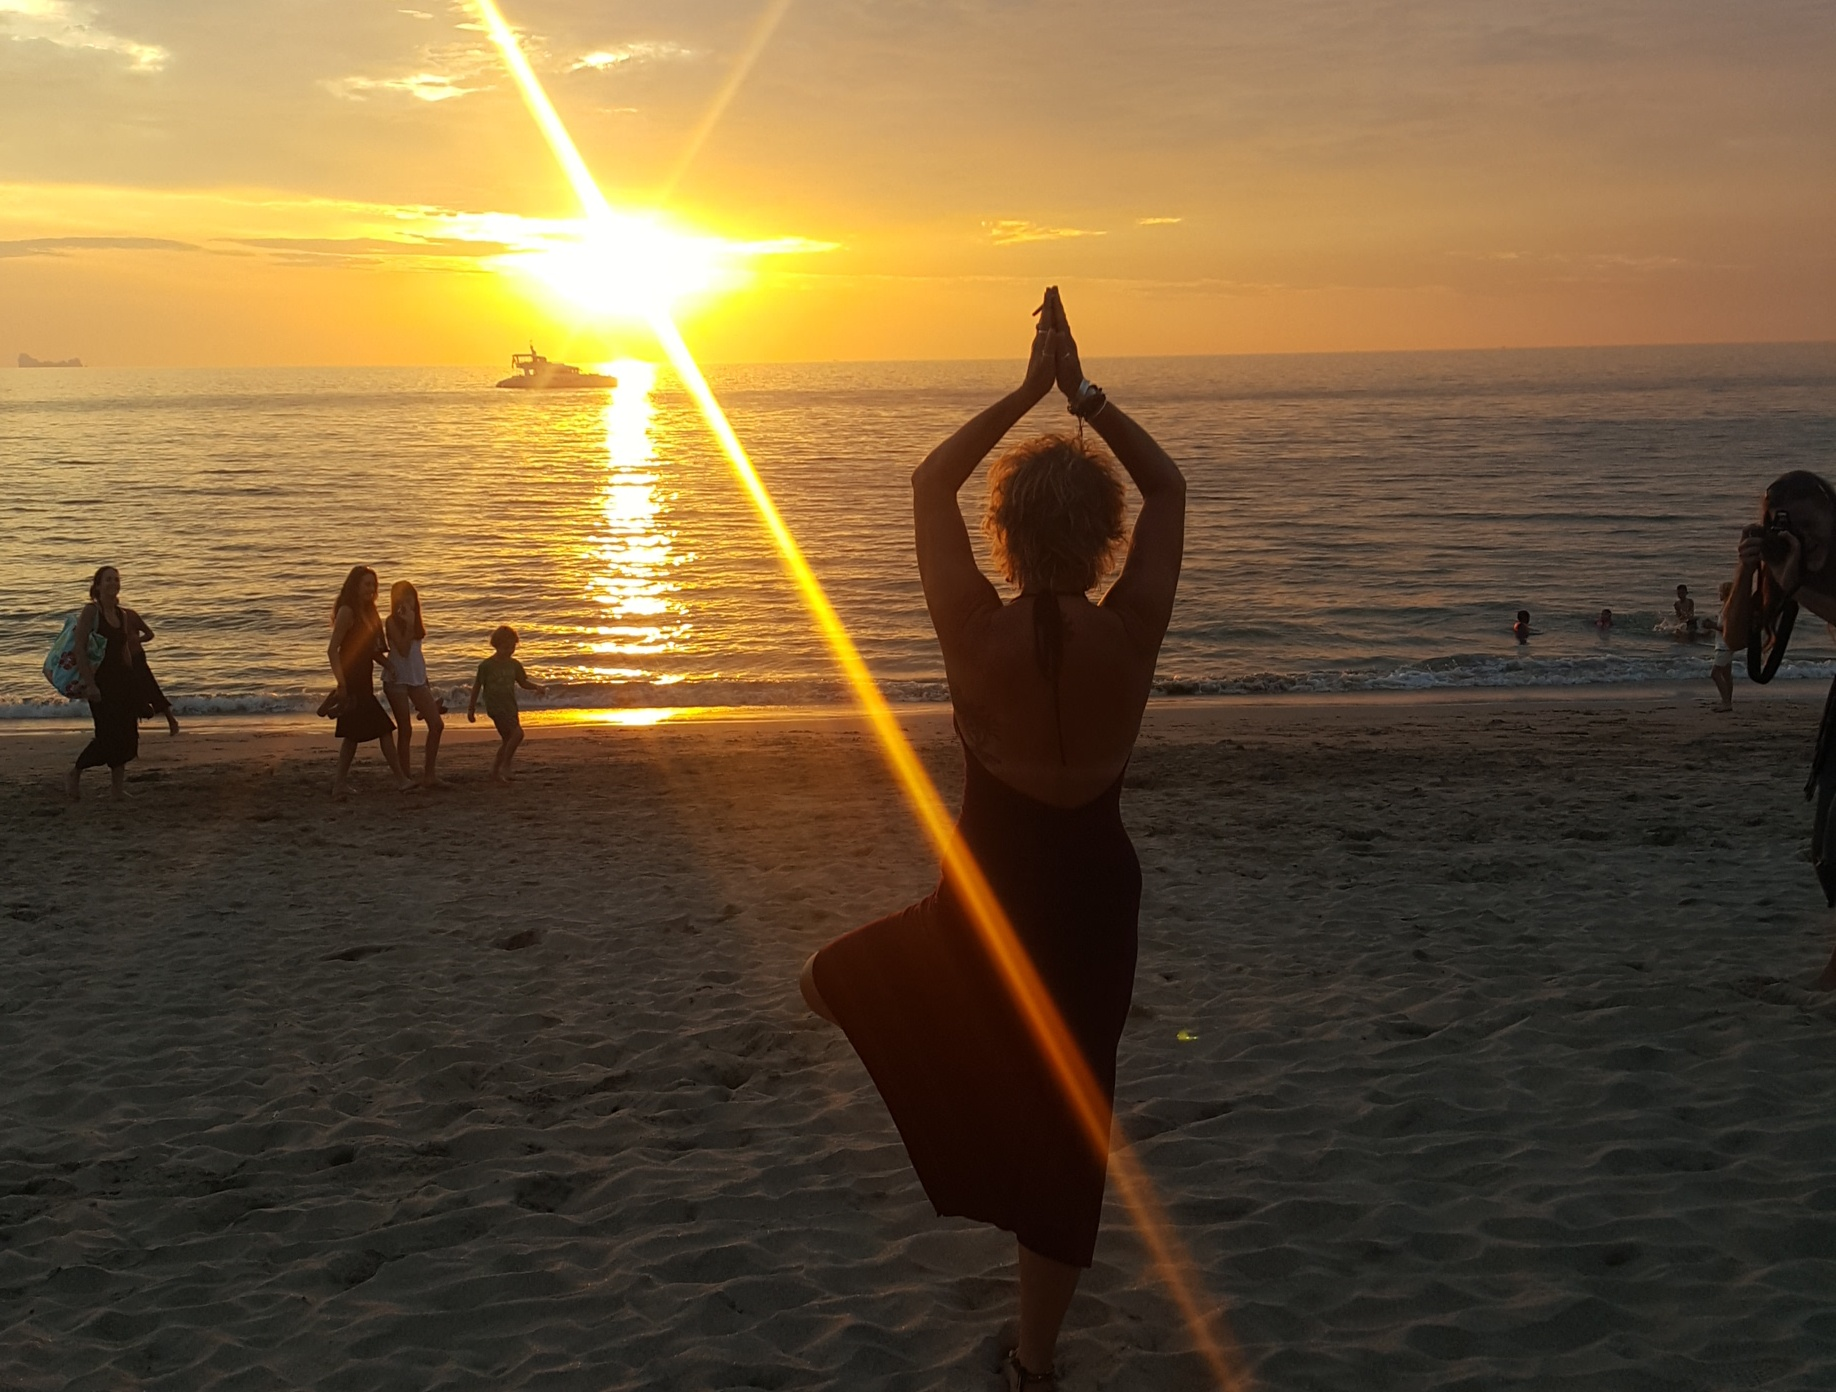 A stunning bright orange sunset with the sun burning bright just above the horizon, a catamaran floats on the water, a few people walk by and in the foreground, a lady is doing a yoga tree pose